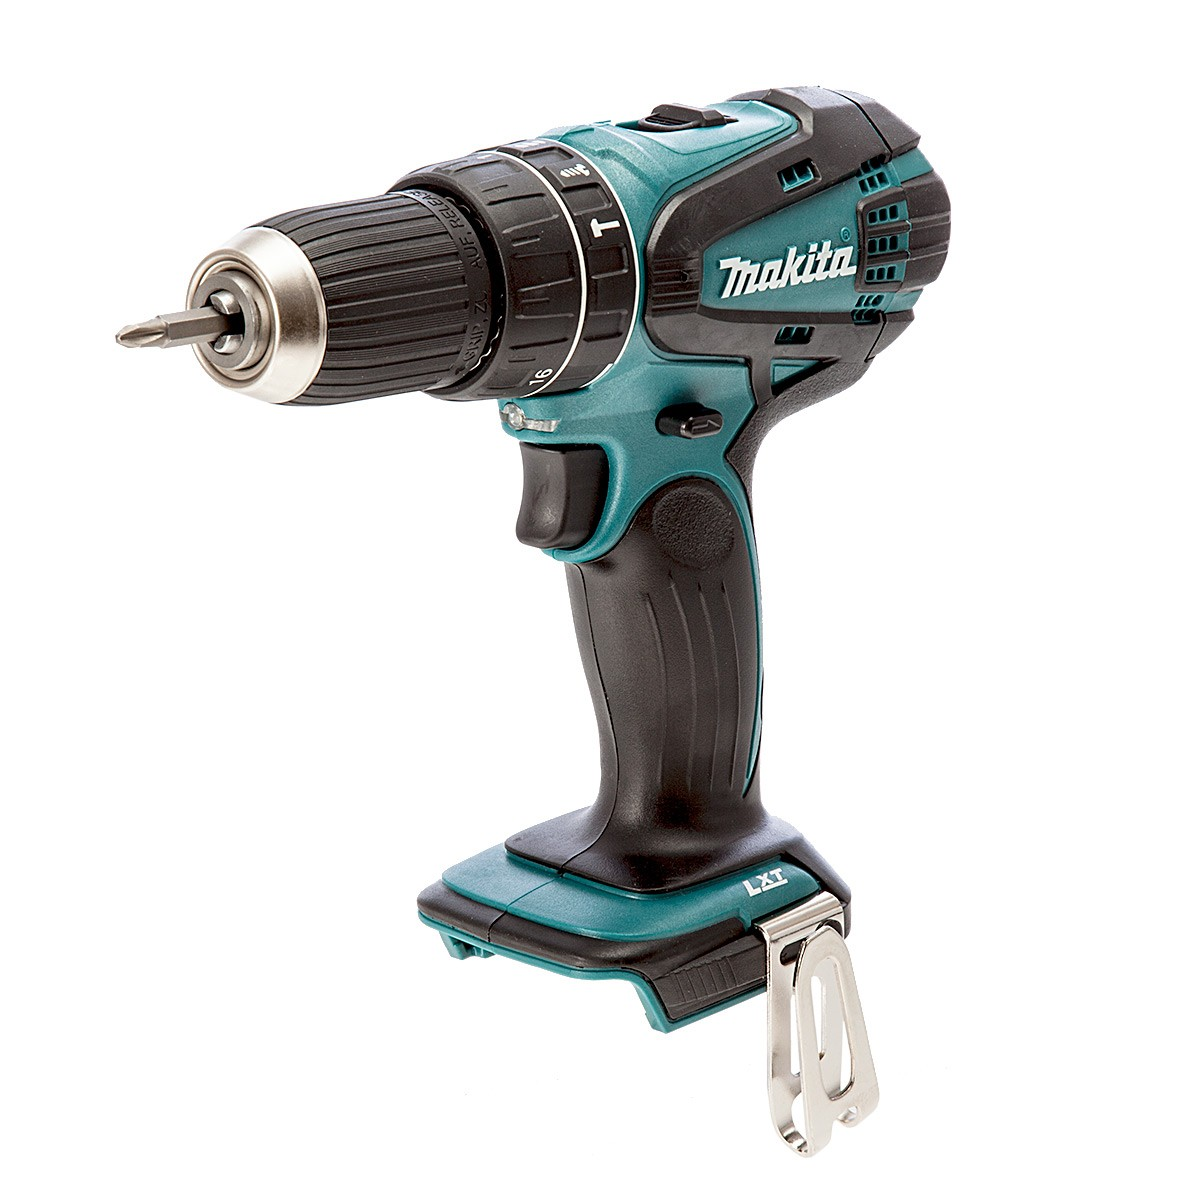 Makita DHP456Z 18V Li-ion Combi Drill 2 Speed Body Only